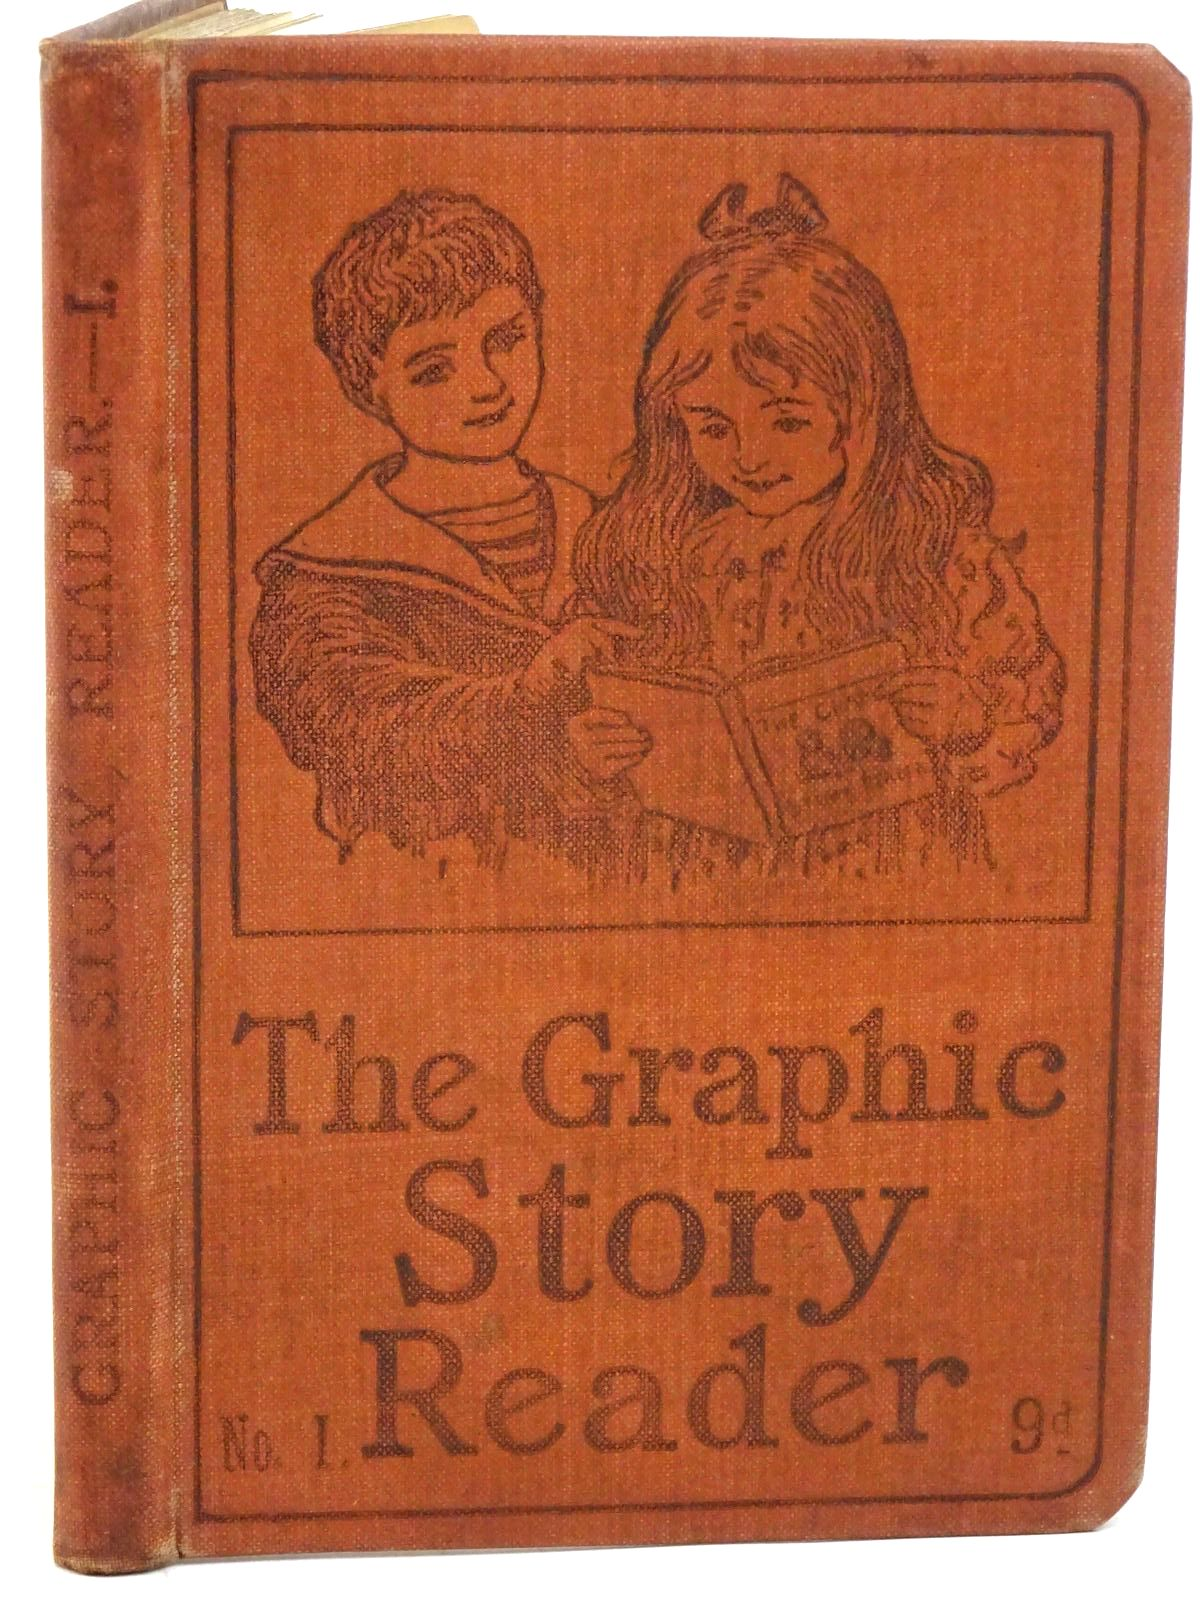 Photo of THE GRAPHIC STORY READER BOOK 1 illustrated by Wain, Louis Aldin, Cecil et al., published by William Collins Sons & Co. Ltd. (STOCK CODE: 1317963)  for sale by Stella & Rose's Books